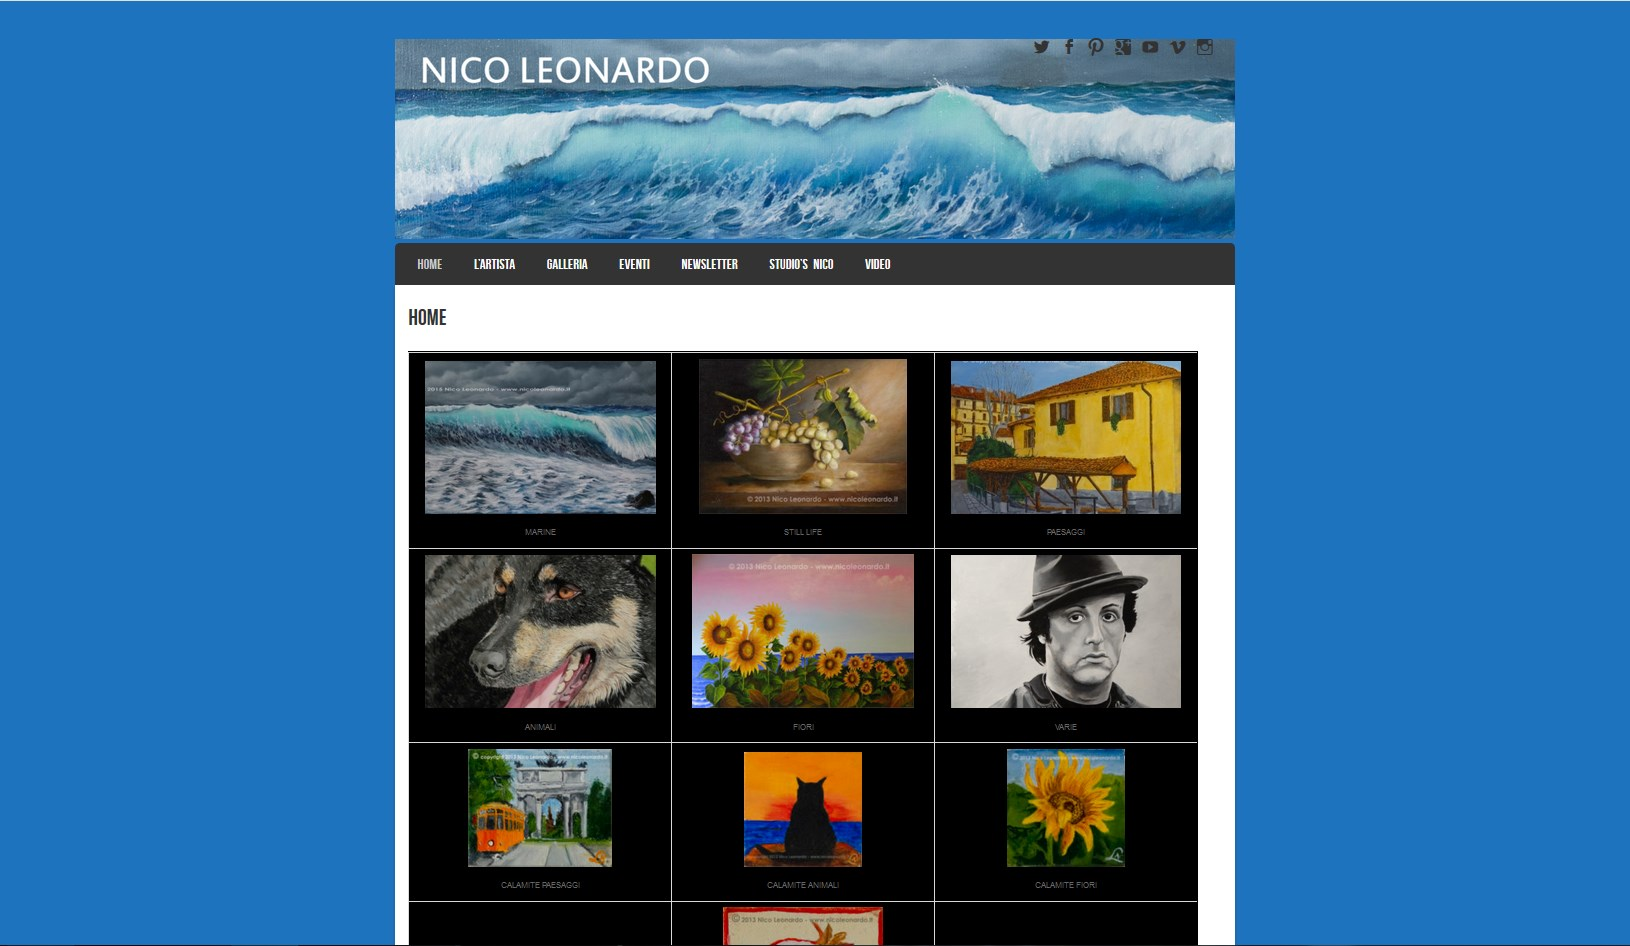 http://www.nicoleonardo.it/